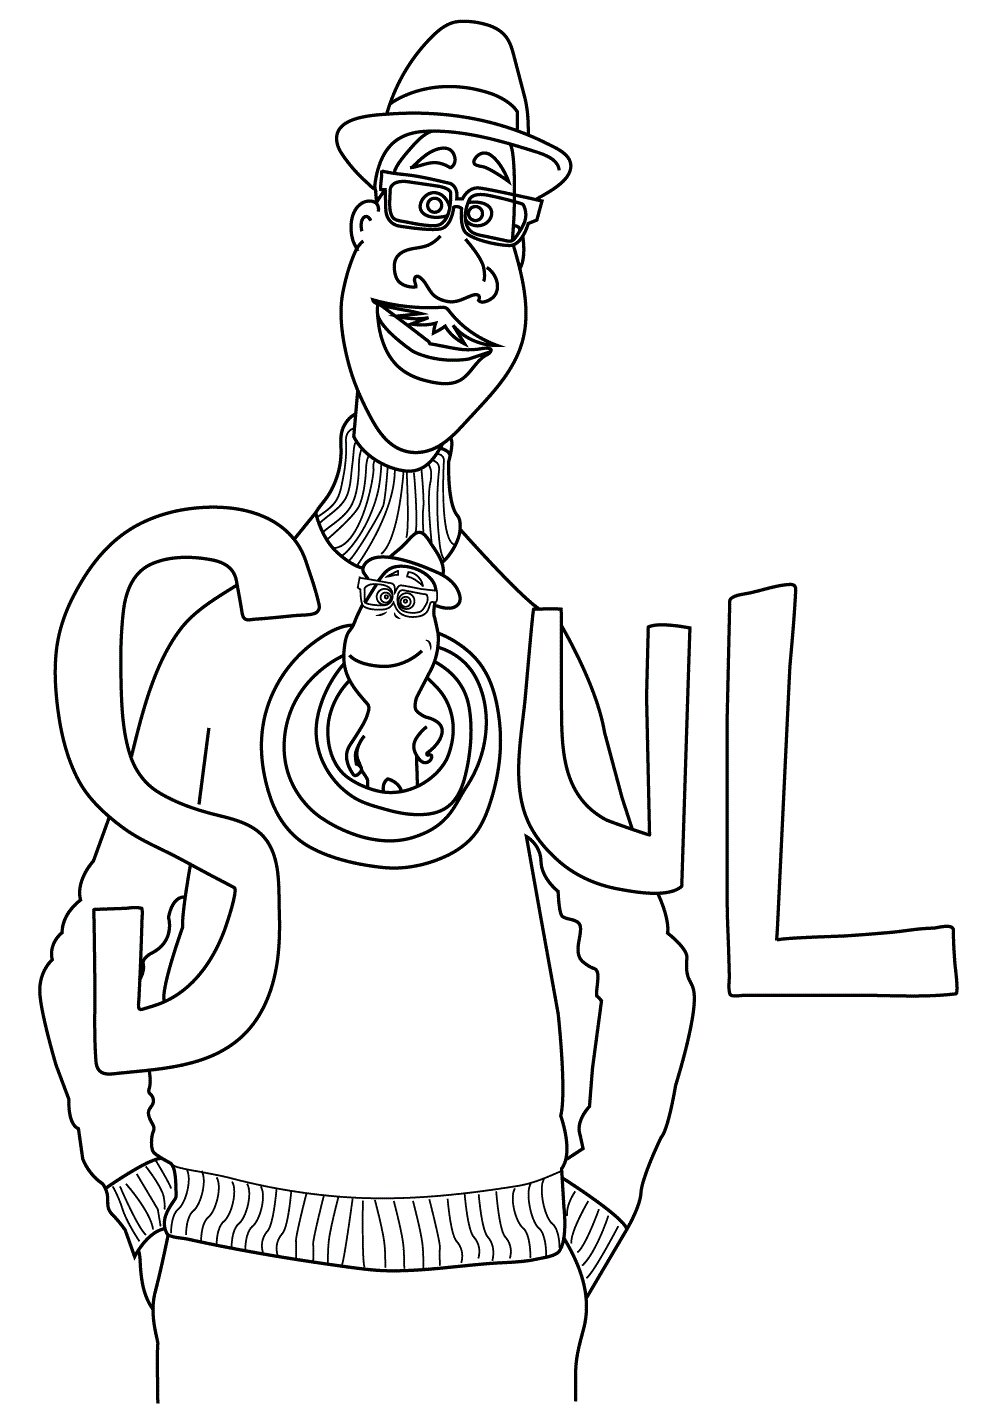 Joe from Soul Coloring Page